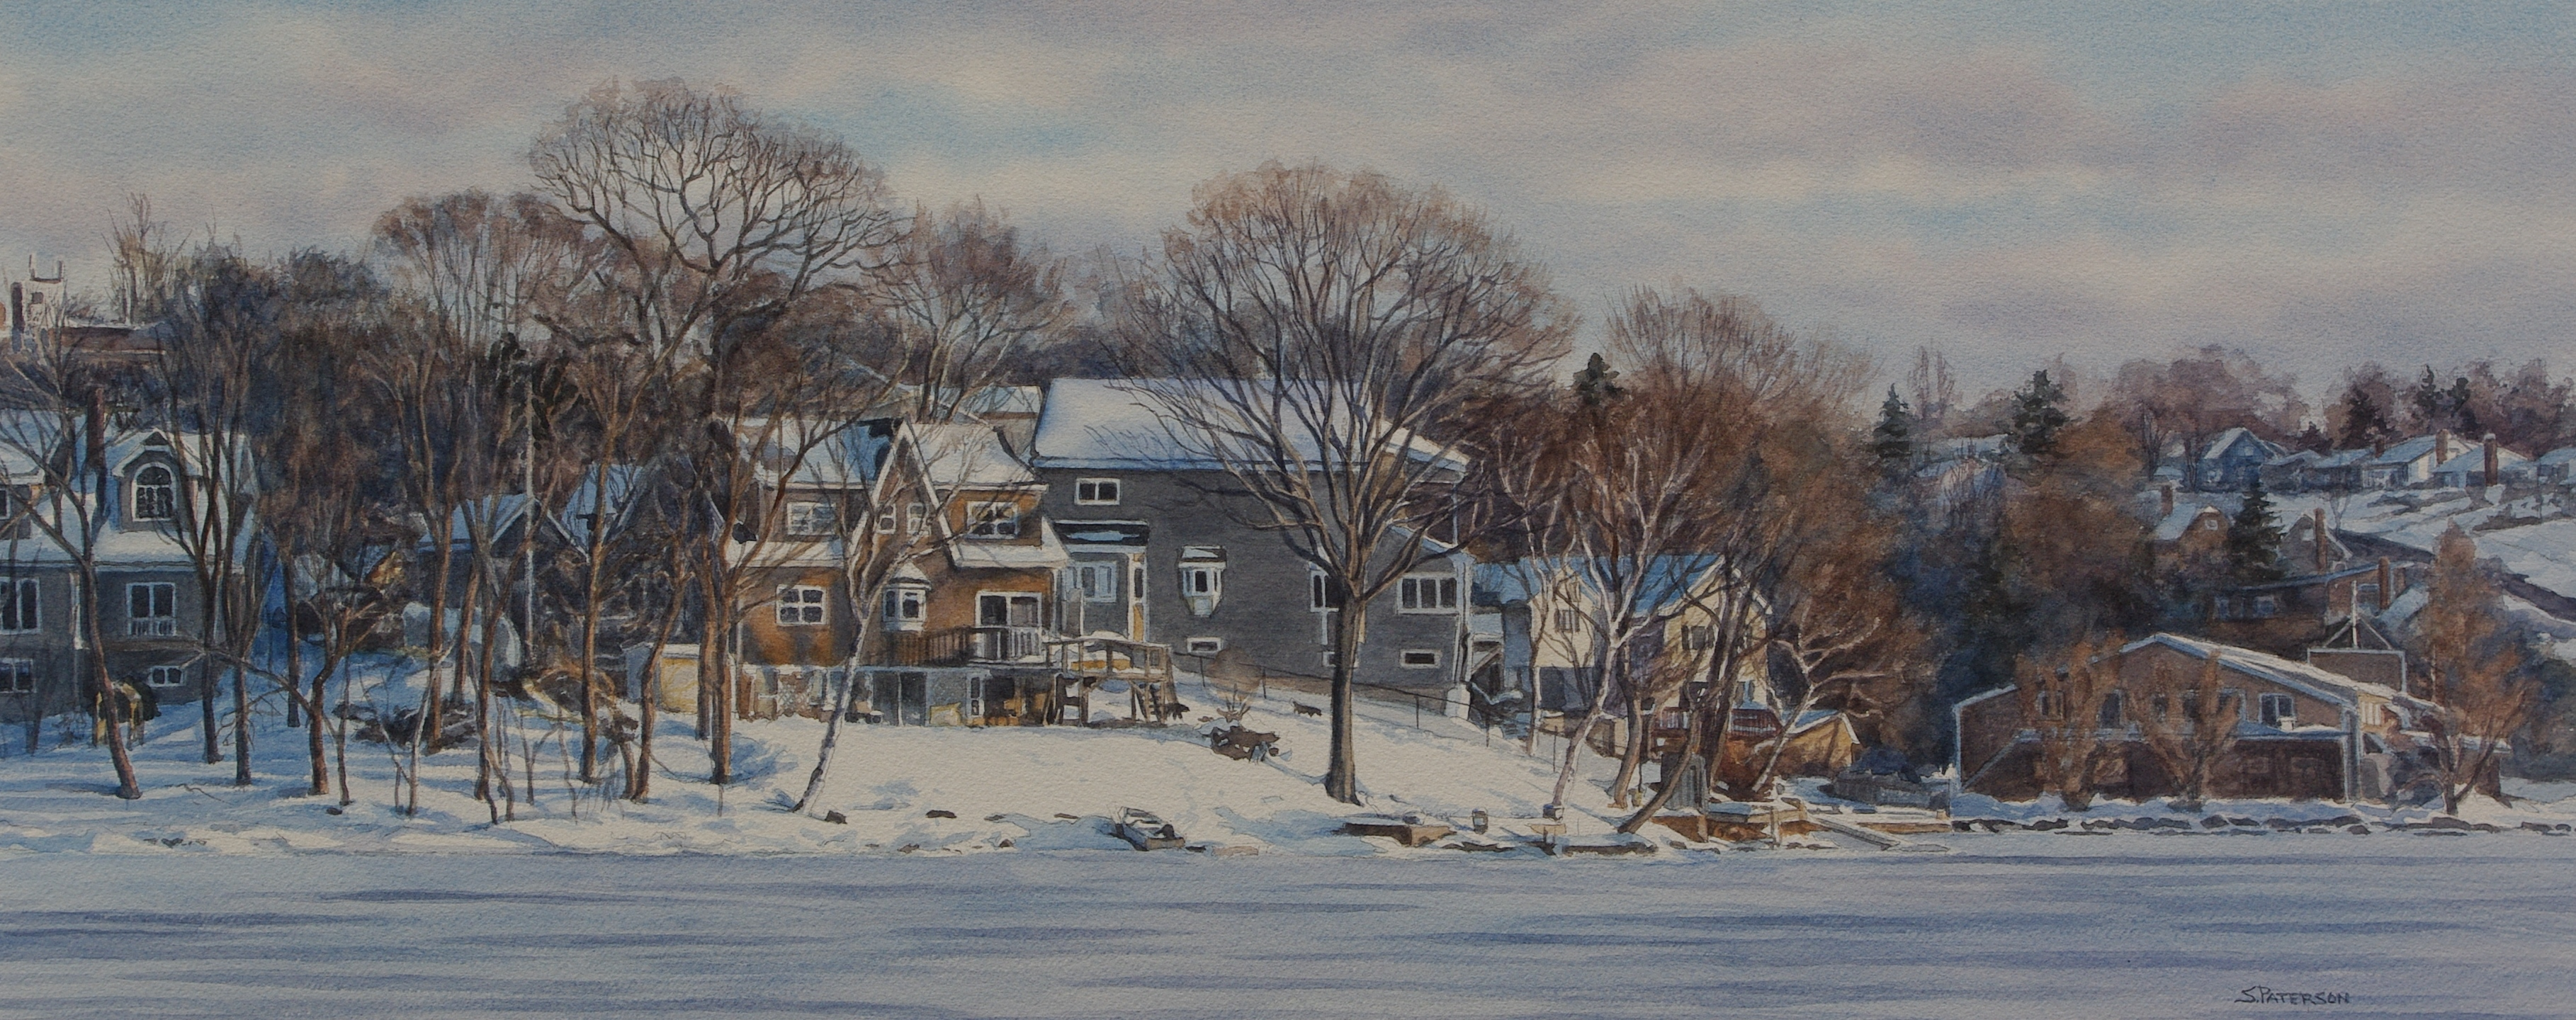 Winter on Lake Banook by Susan Paterson